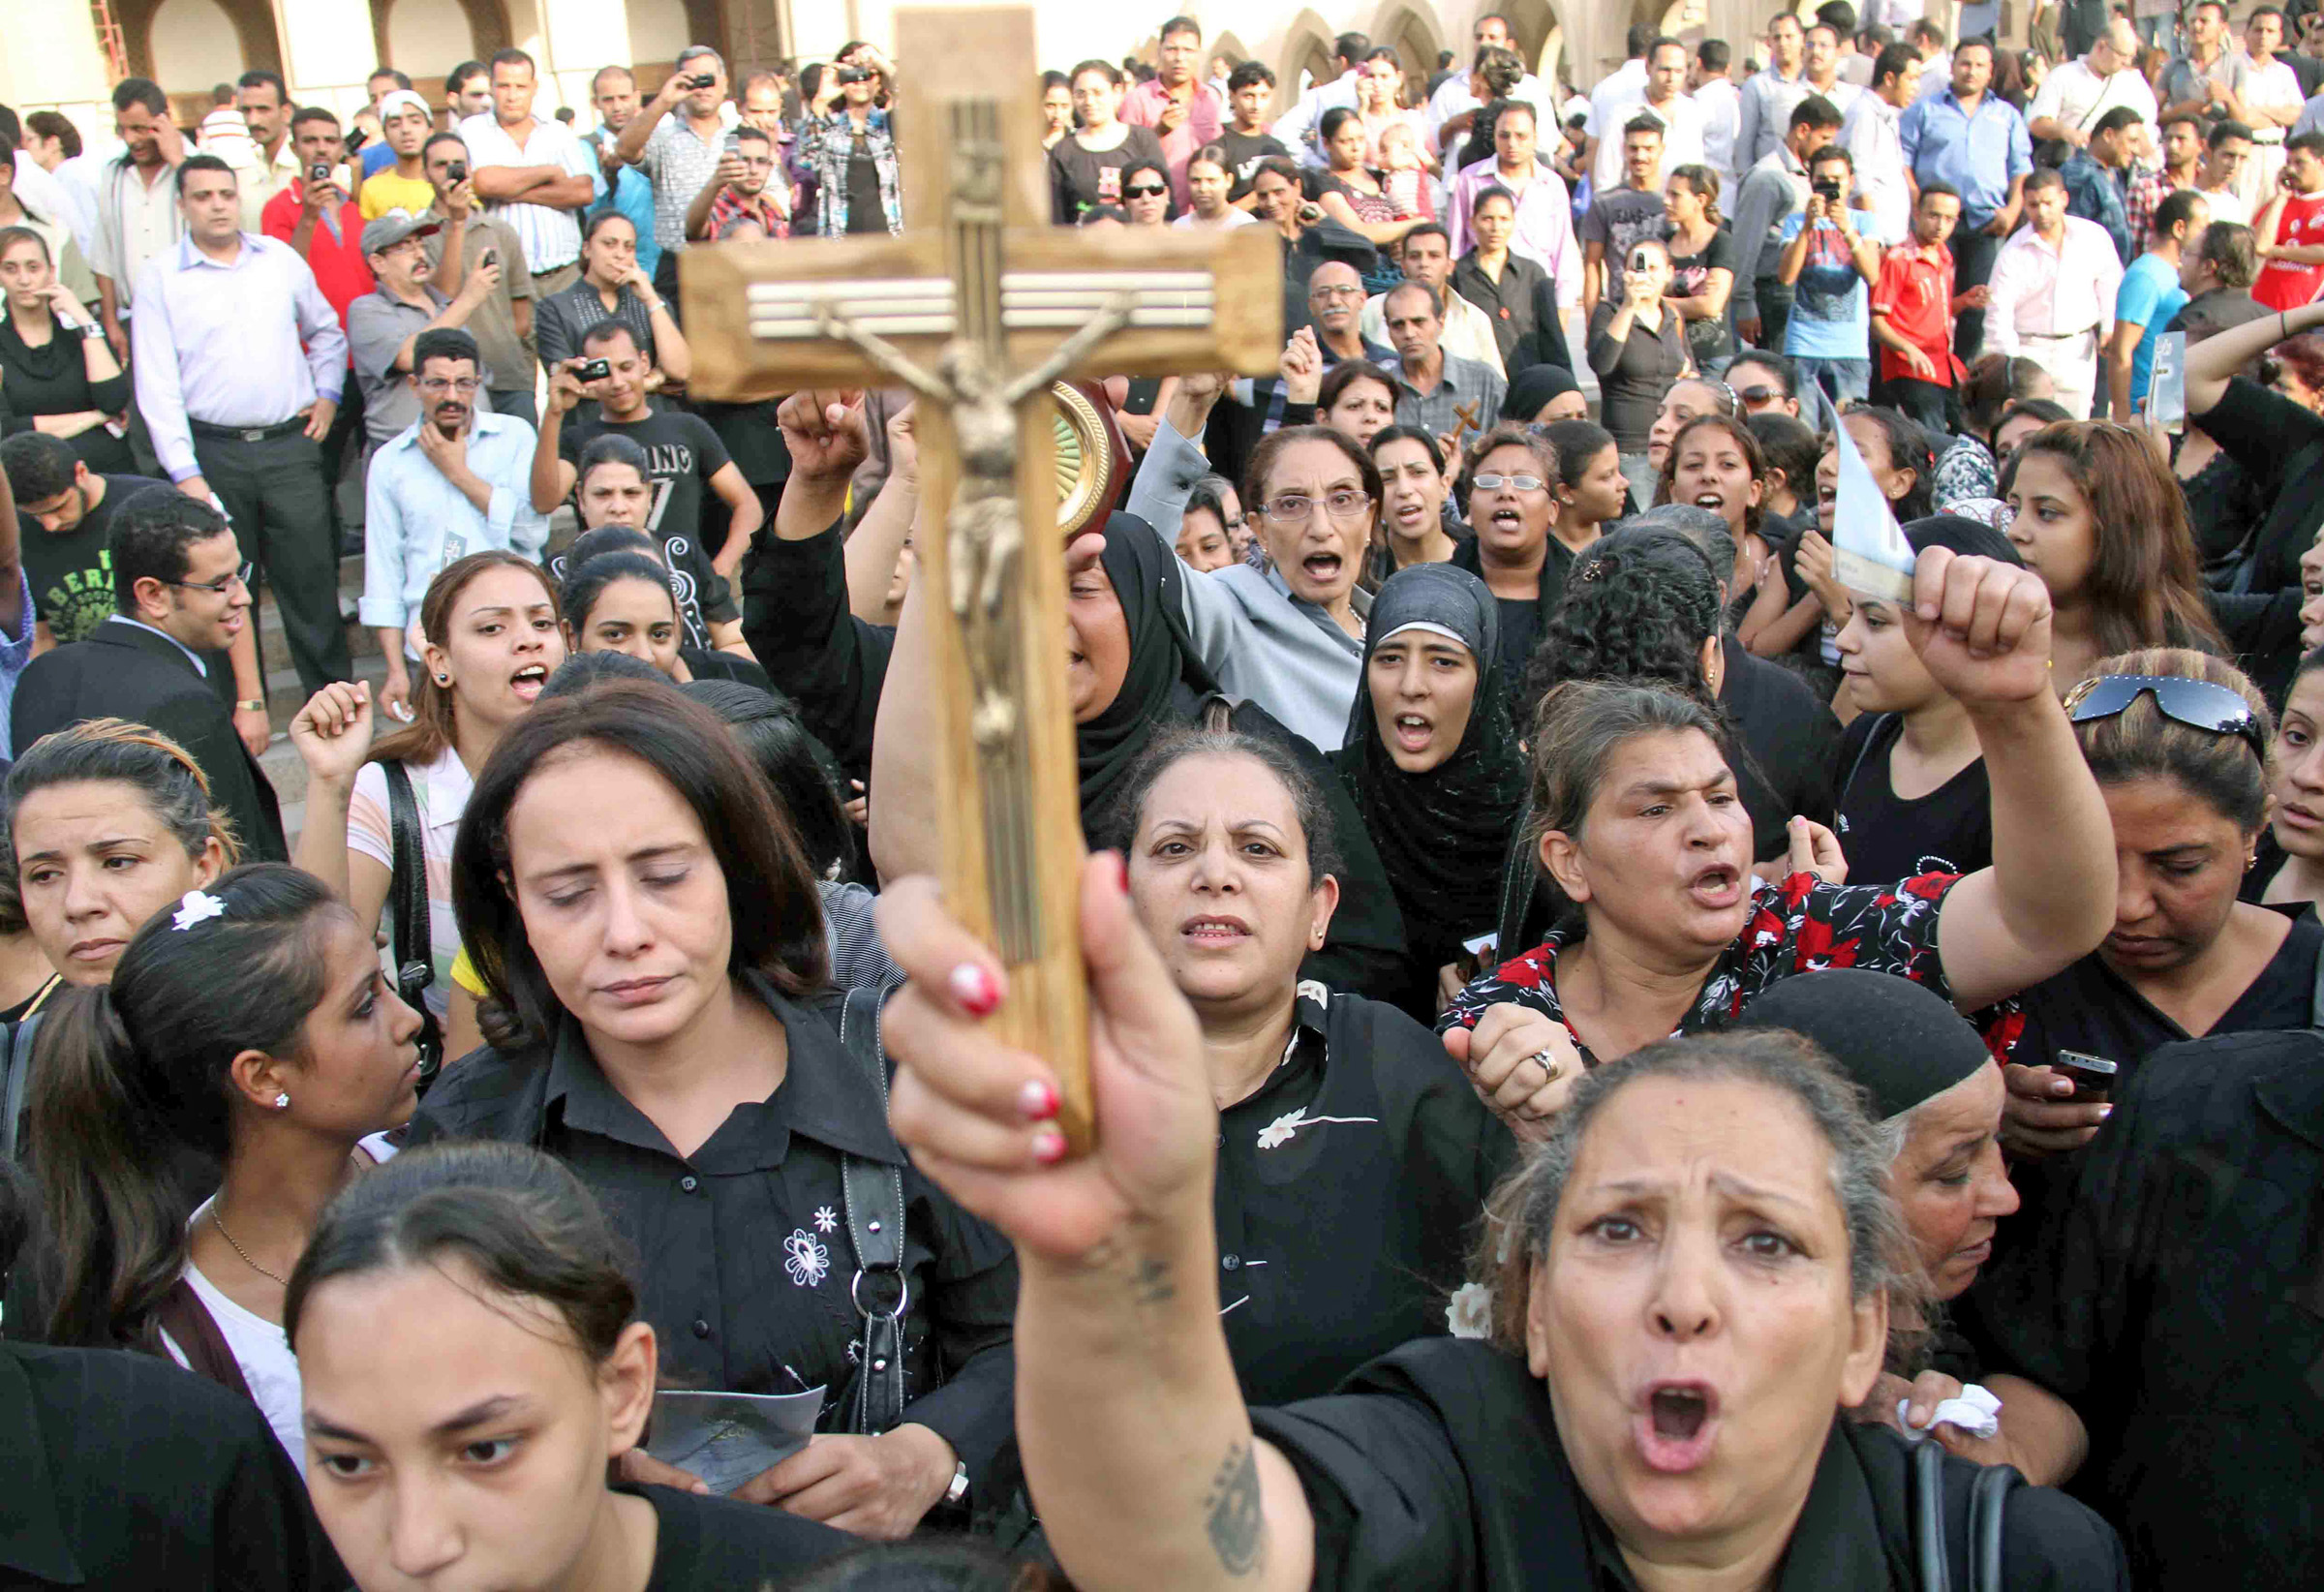 Raising the cross, Christian women protest against the killing of Christian demonstrators in a Sunday evening clash with military police in Cairo